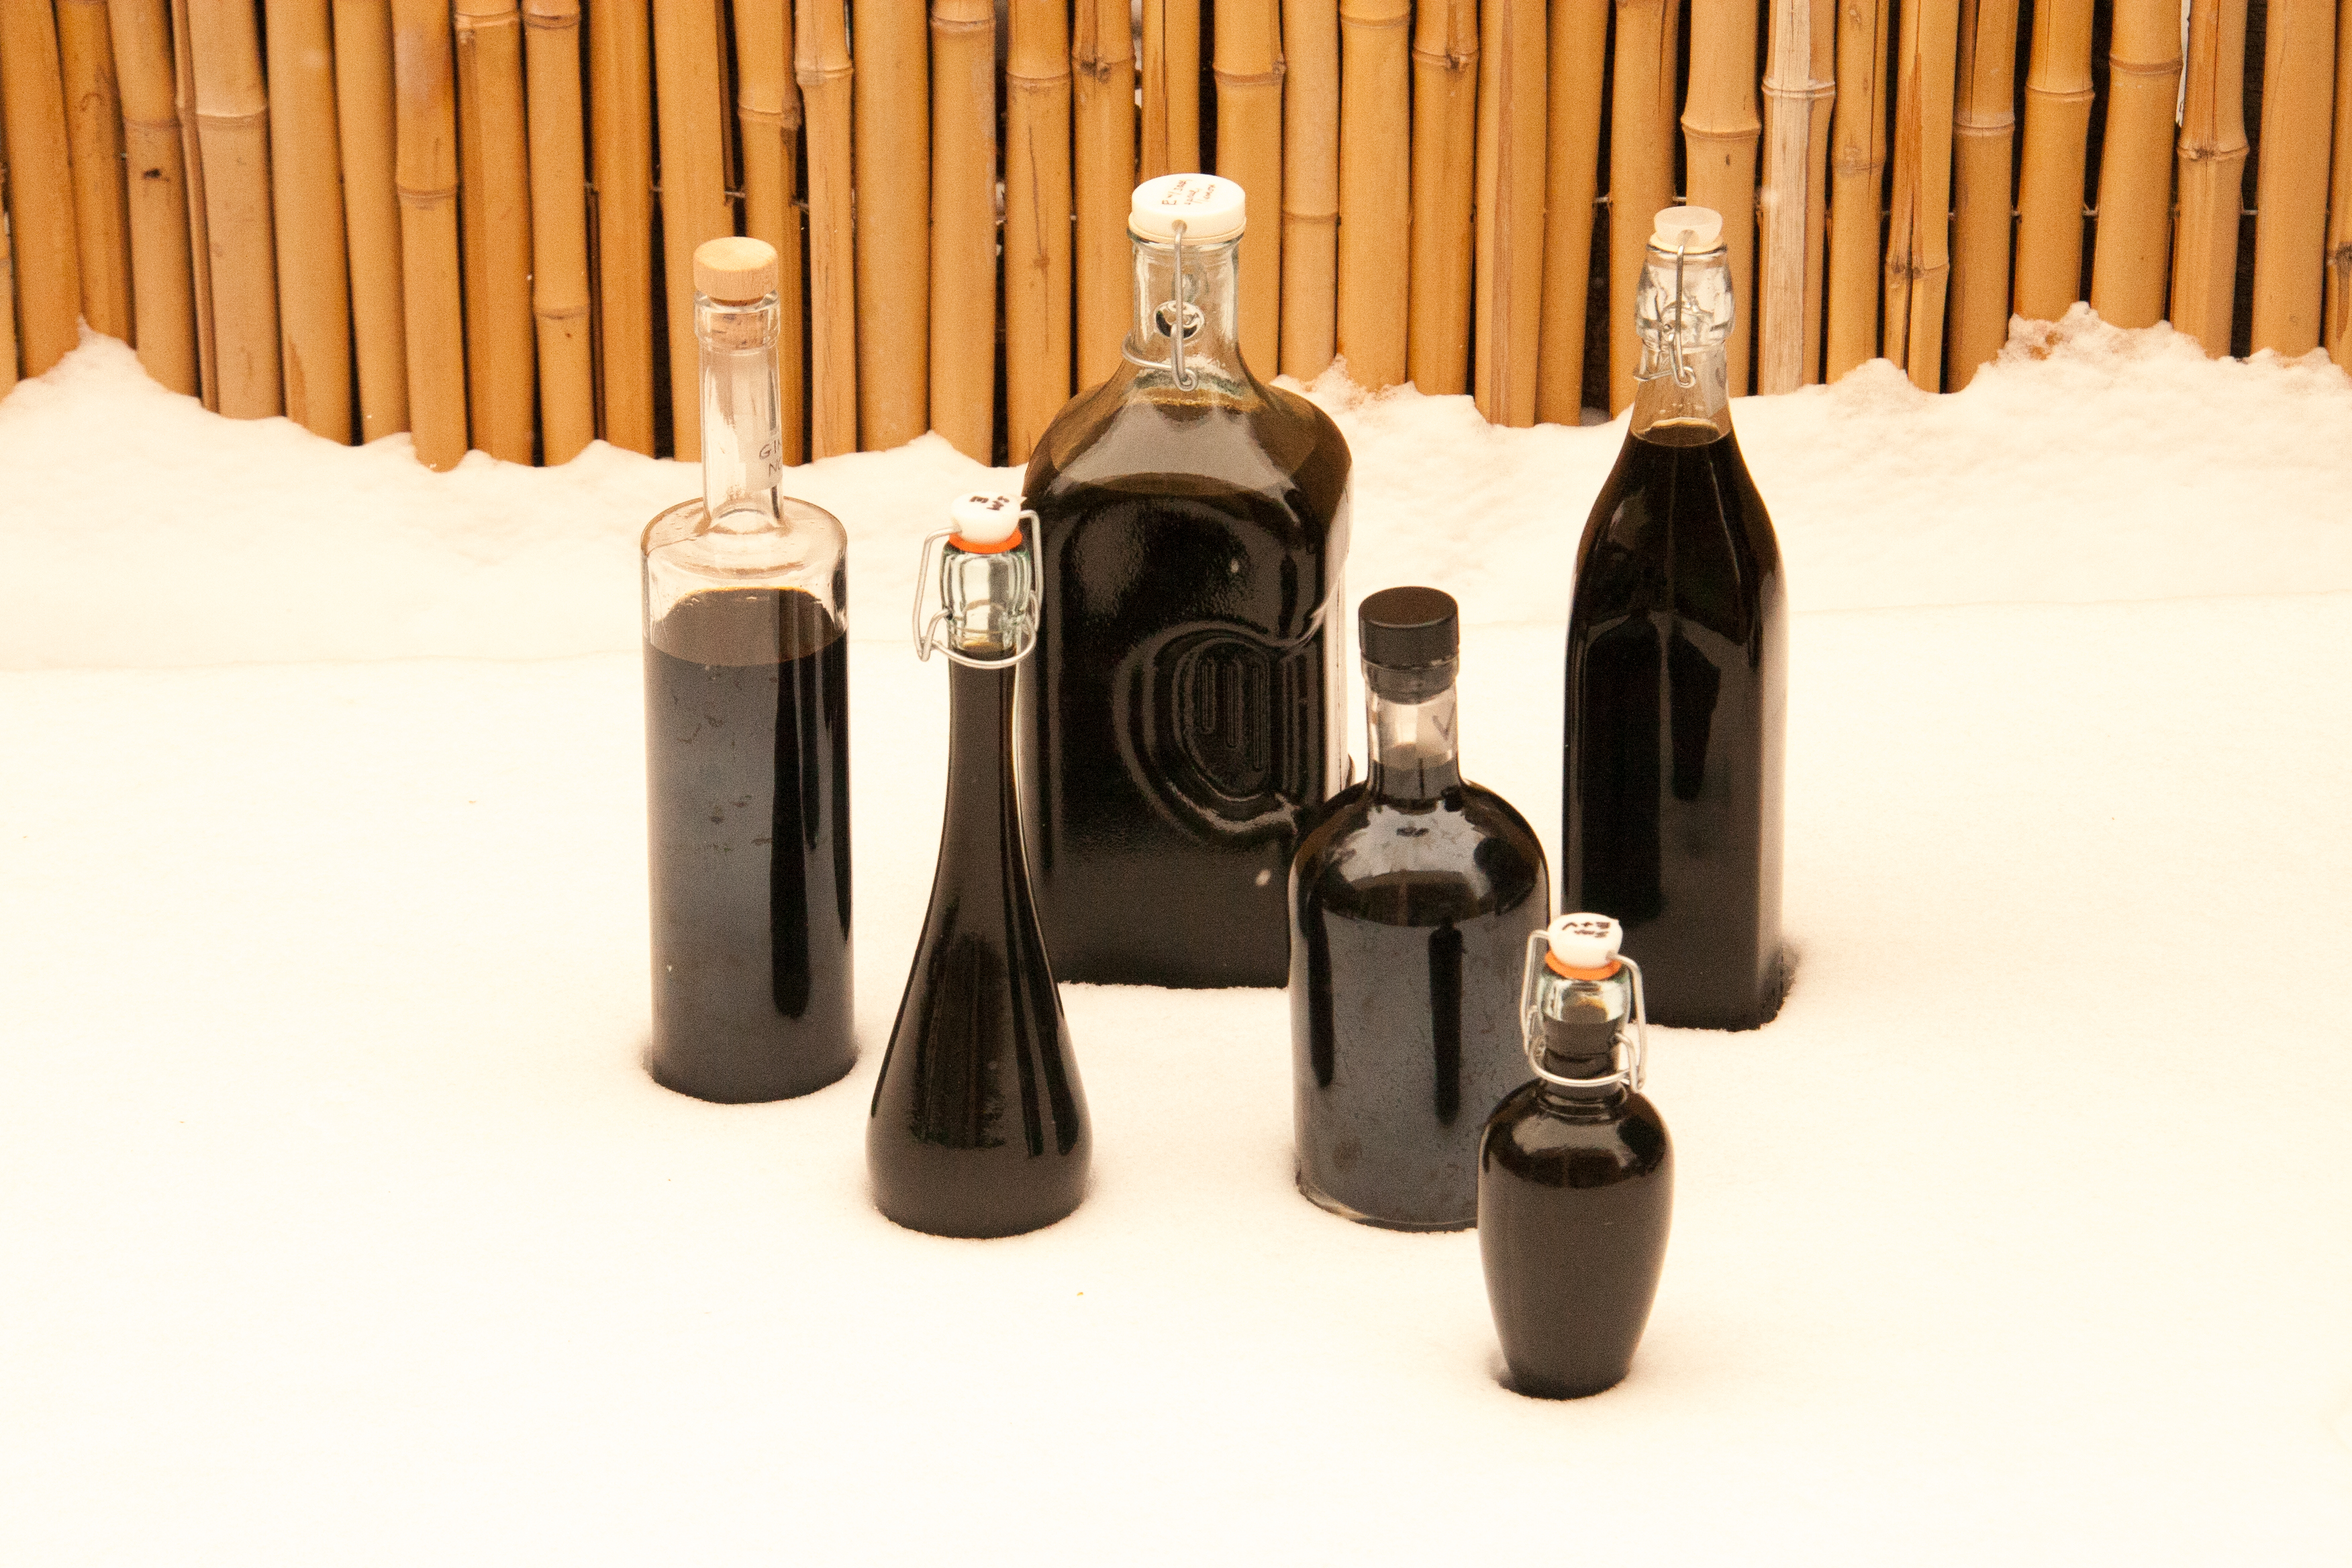 Foraged Nocino: a Delicious Liqueur Made from Unripe Nuts